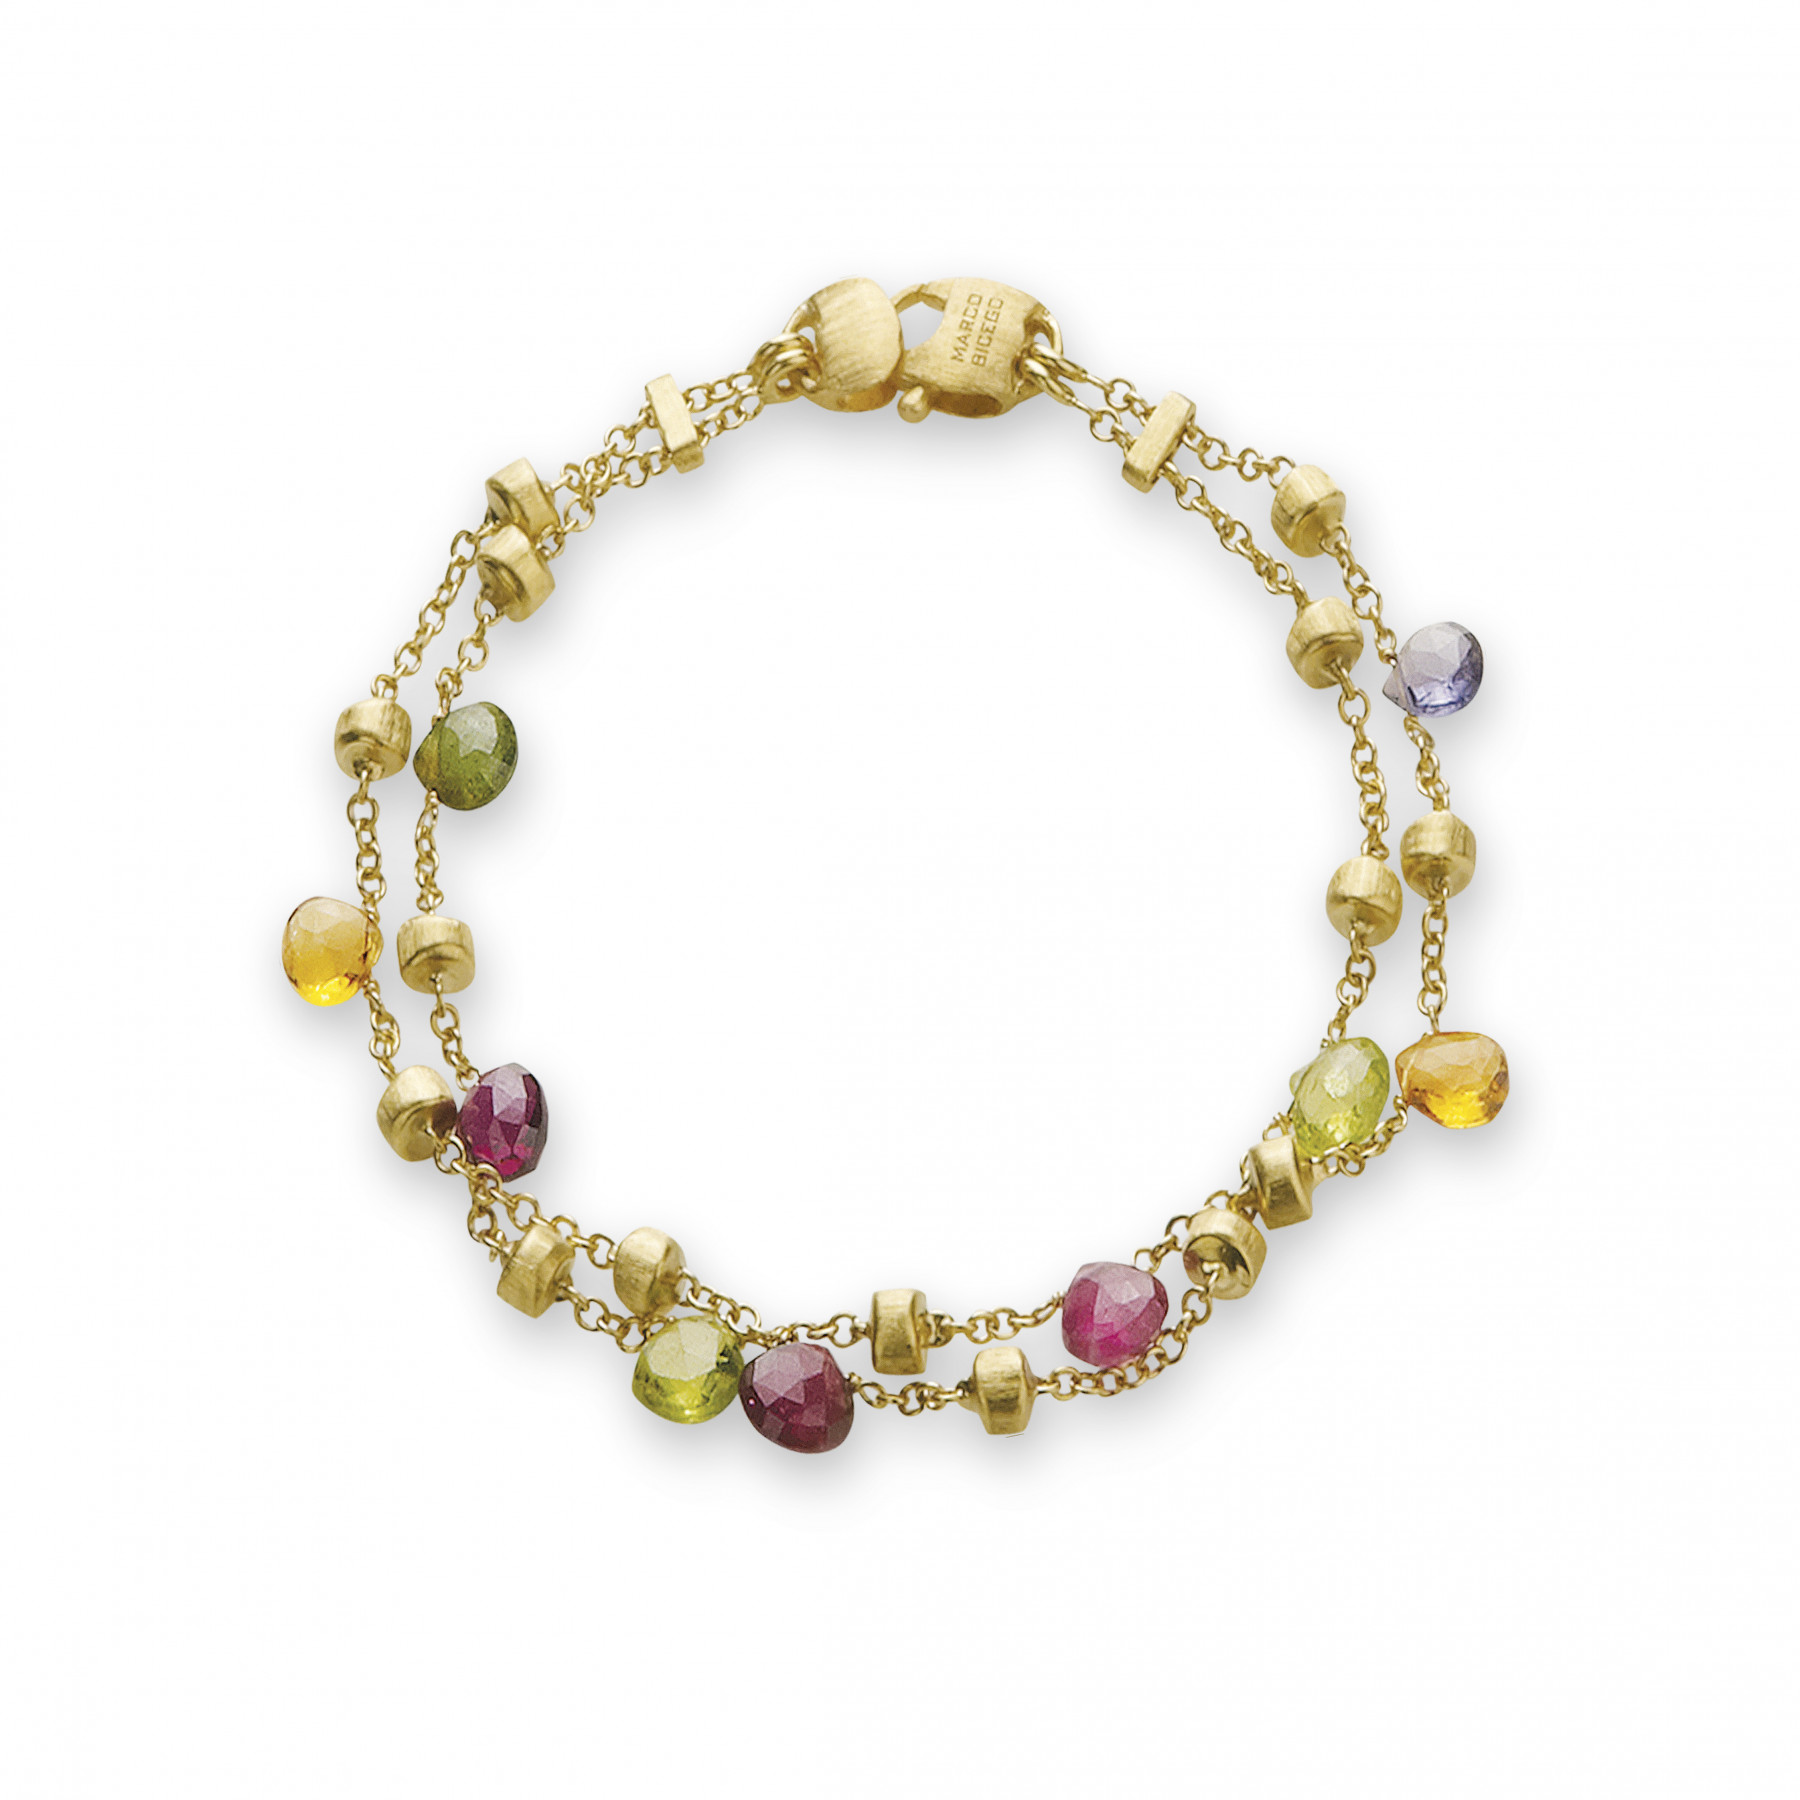 Marco Bicego Paradise 2 Strand 18kt Yellow Gold Bracelet with Multi-Colored Gemstones